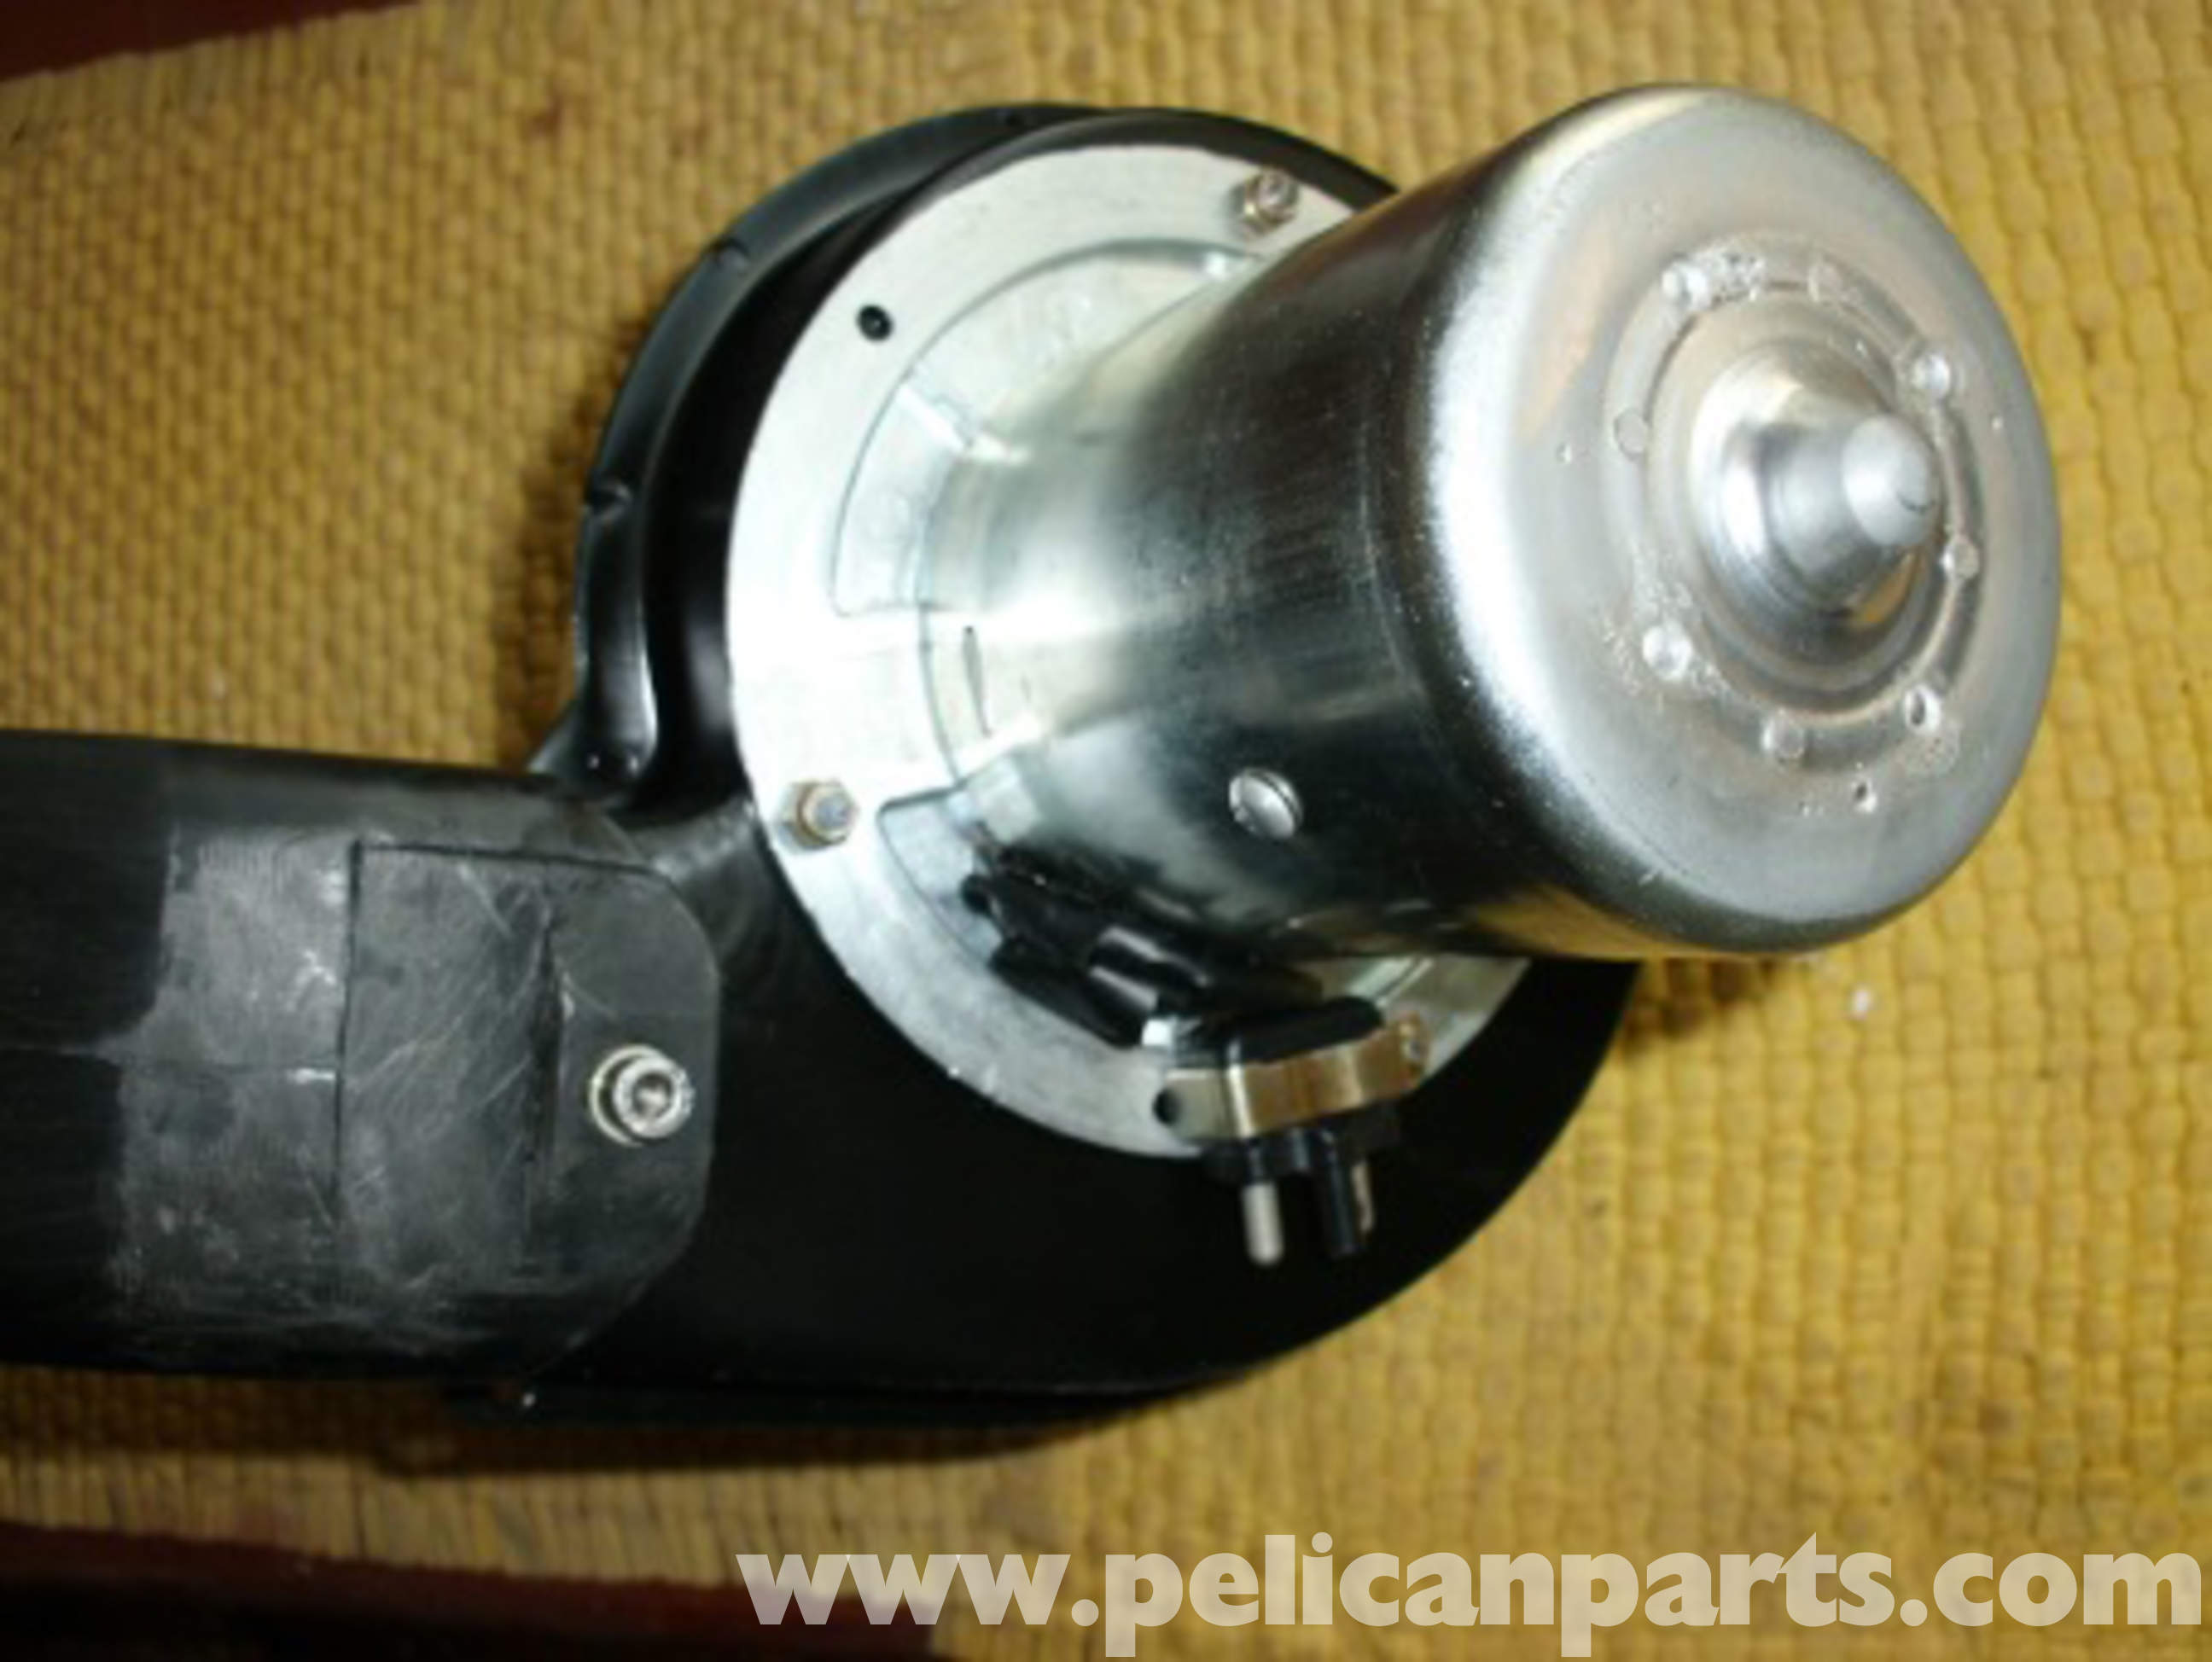 Honda CB750 Wiring Diagram further Ford Blower Motor Relay Location further Heater Blower Motor Replacement in addition 2000 Chevy Impala Intake Vacuum likewise 2016 Julian Calendar. on buick blower motor resistor replacement